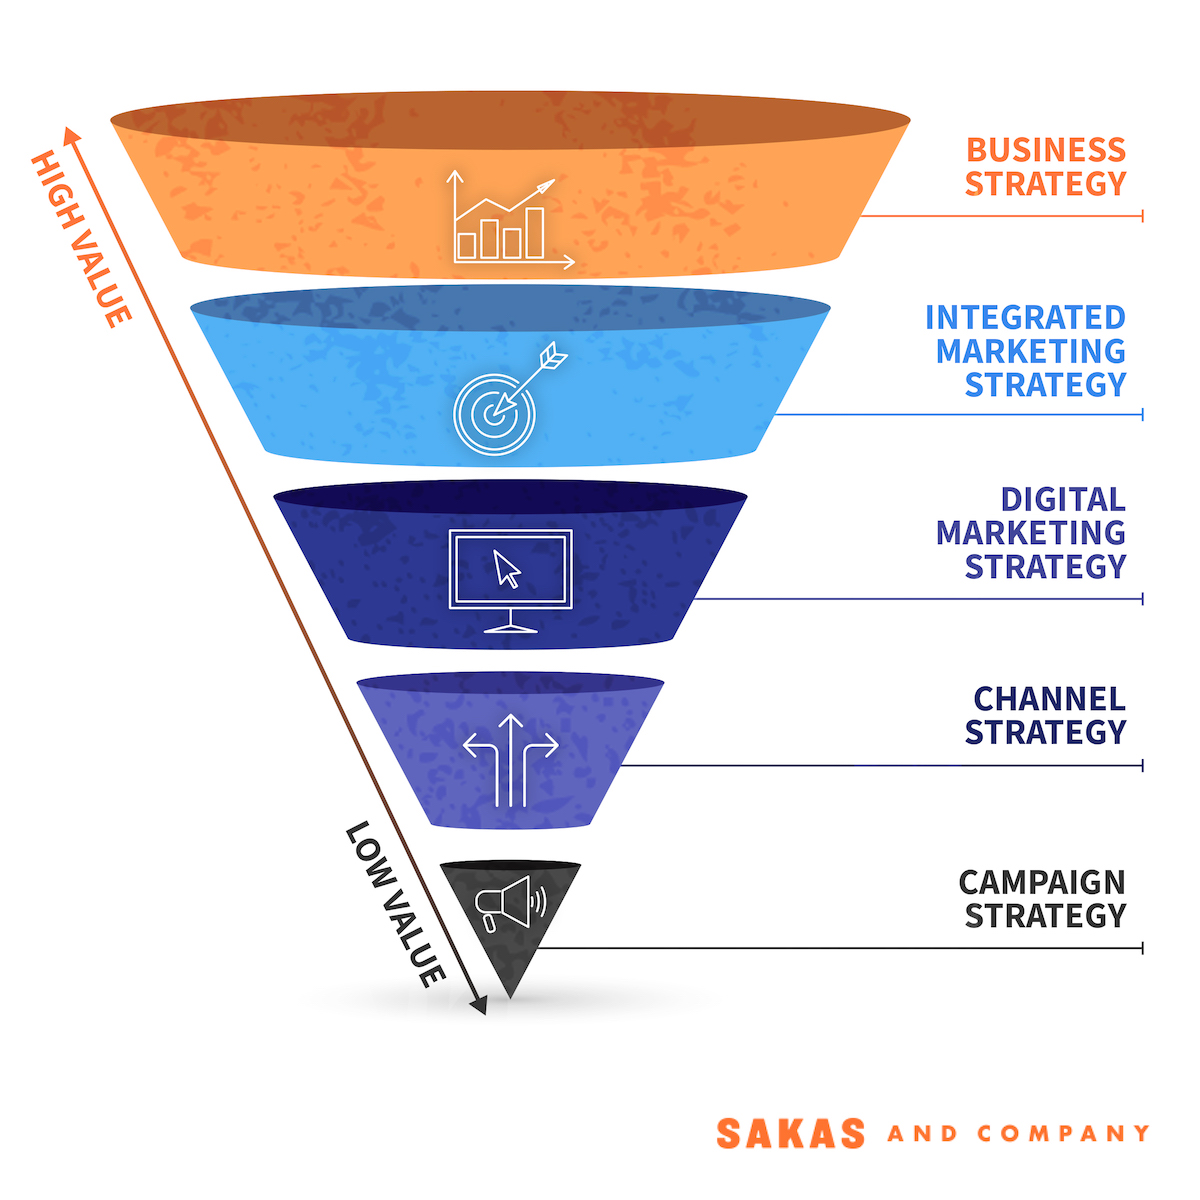 How close are your agencys services to the Business Strategy tier?